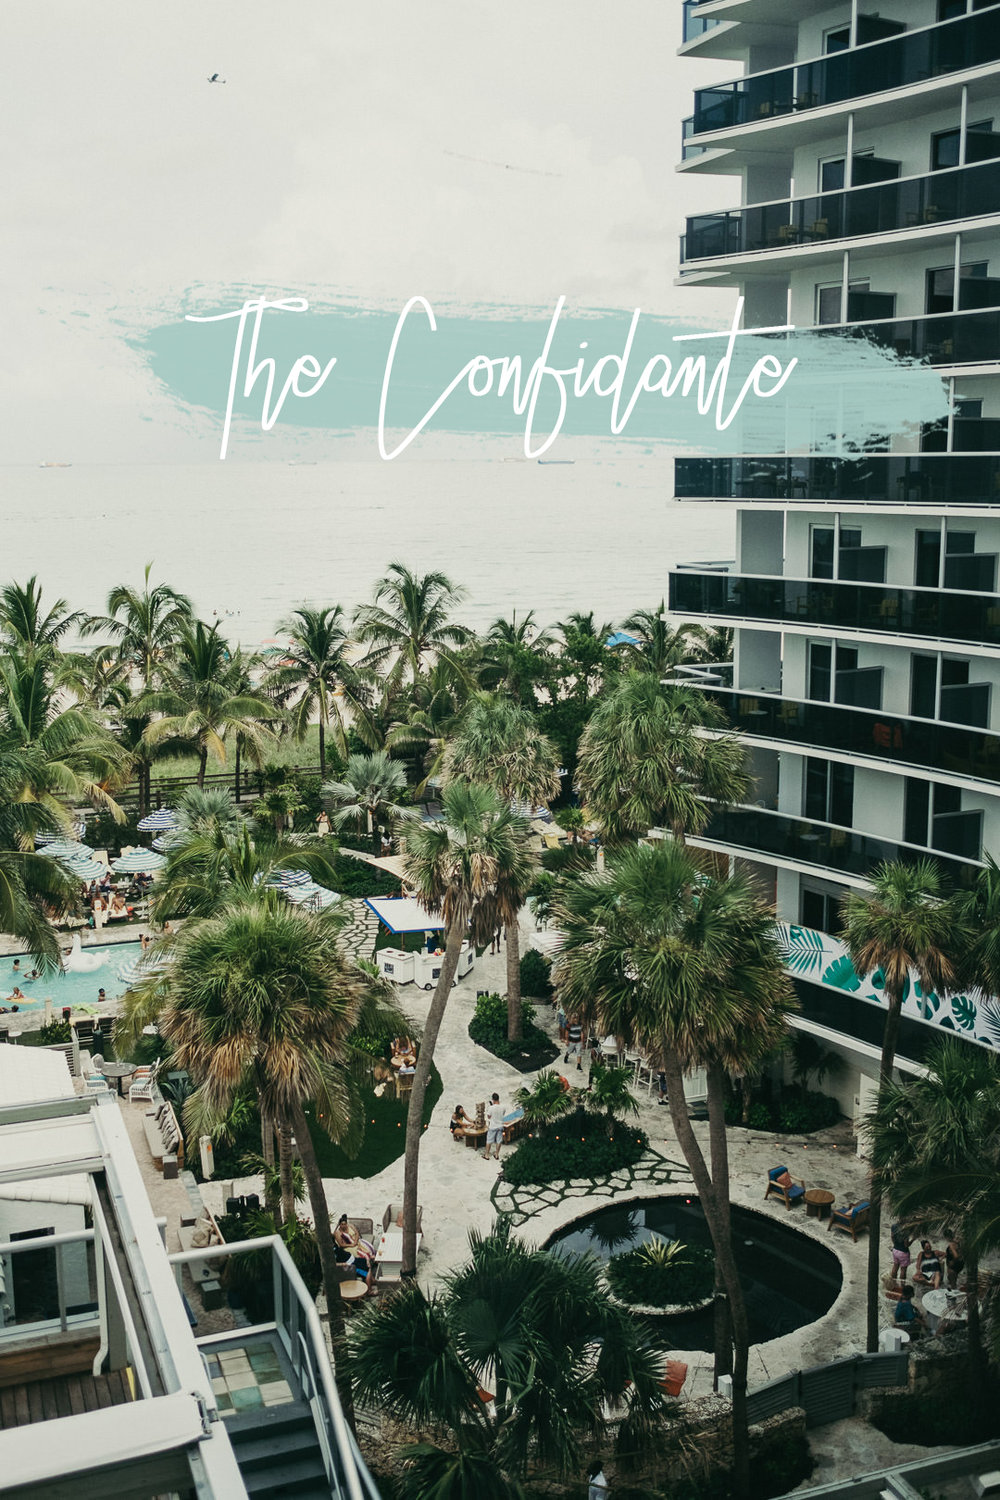 The Best Hotel Miami Beach - The Confidante - Ali Happer Photo_1copy.jpg